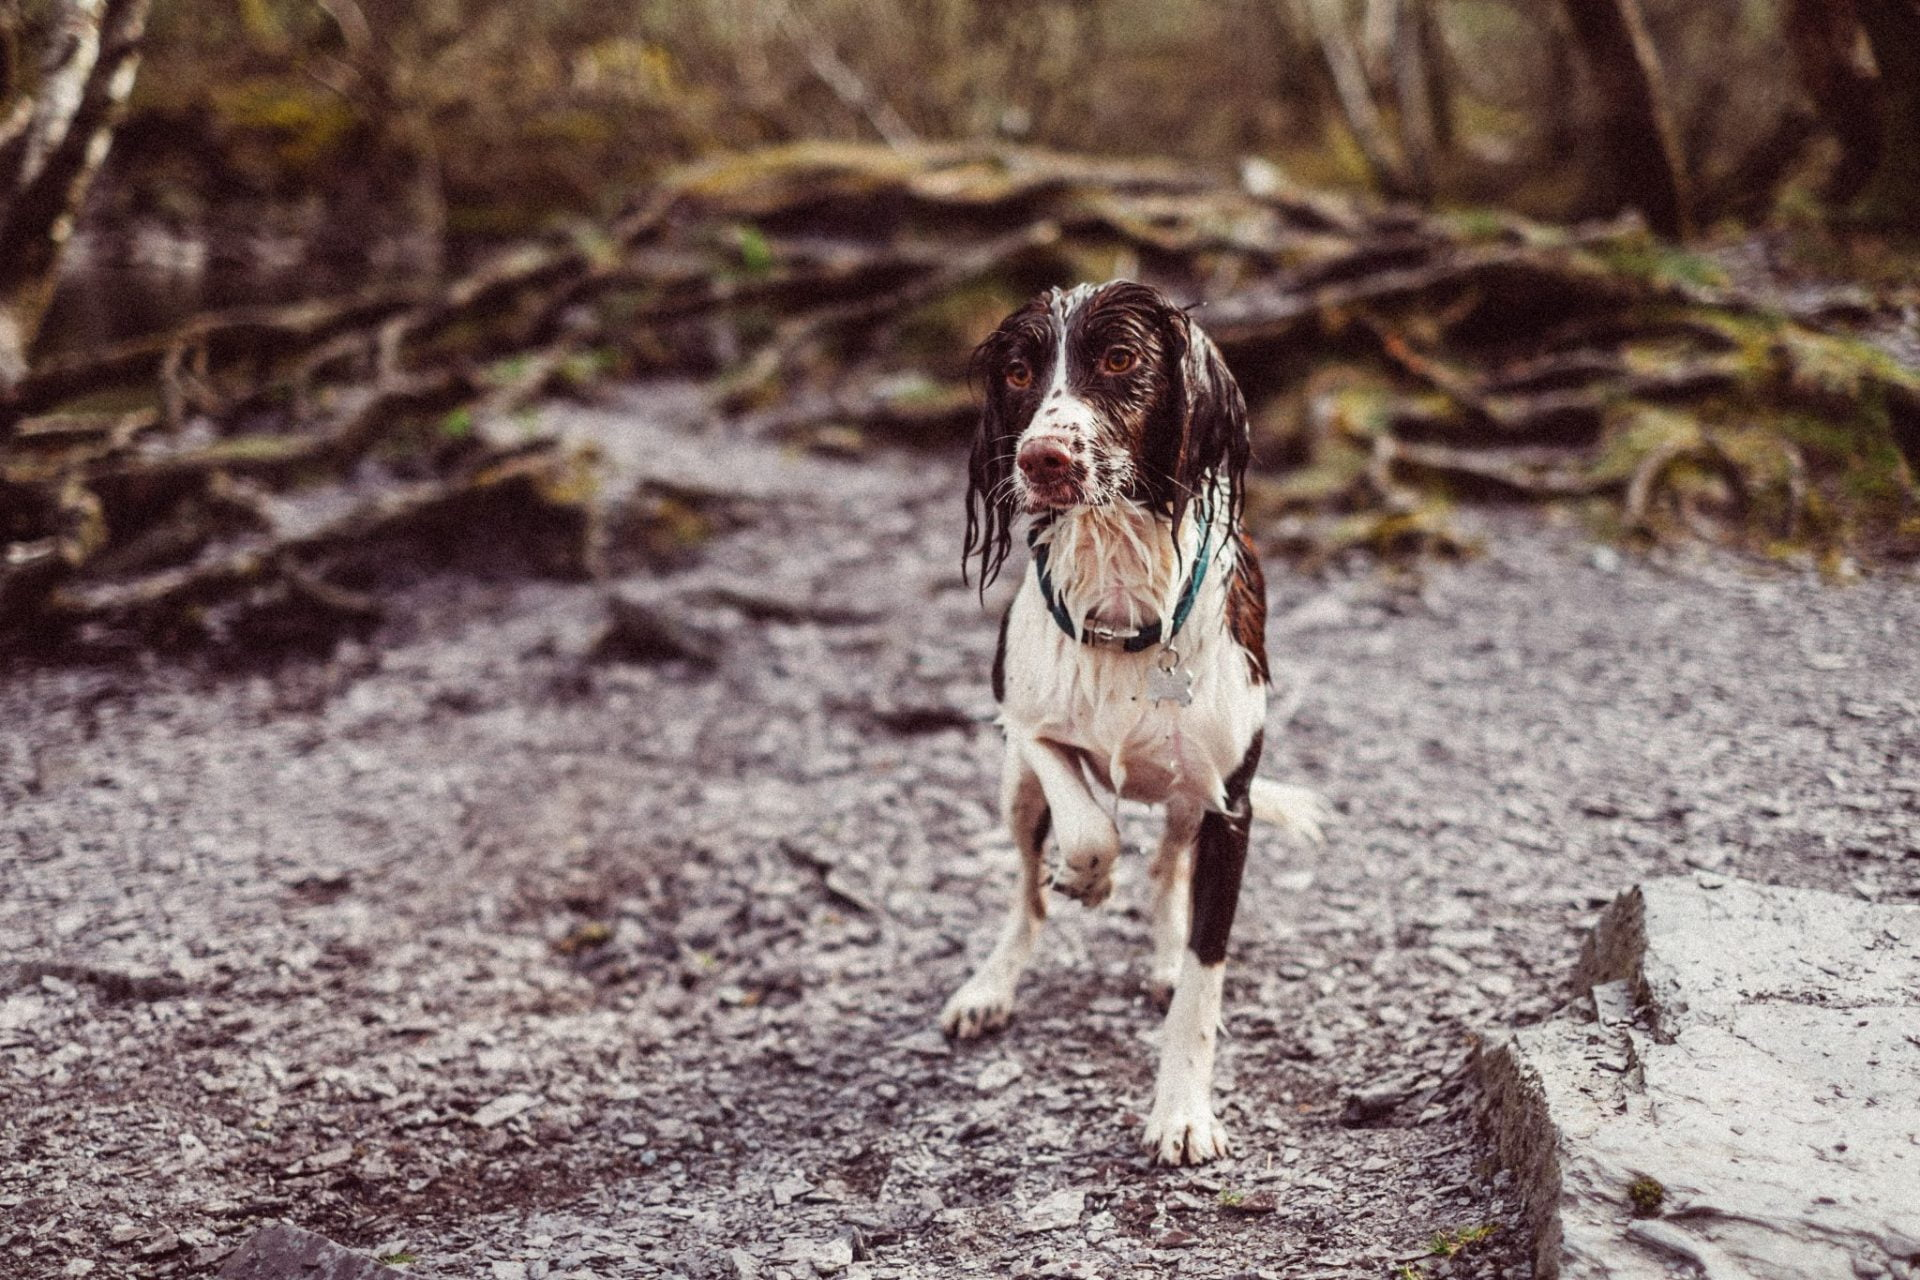 this dog is a lost pet in fire and flood